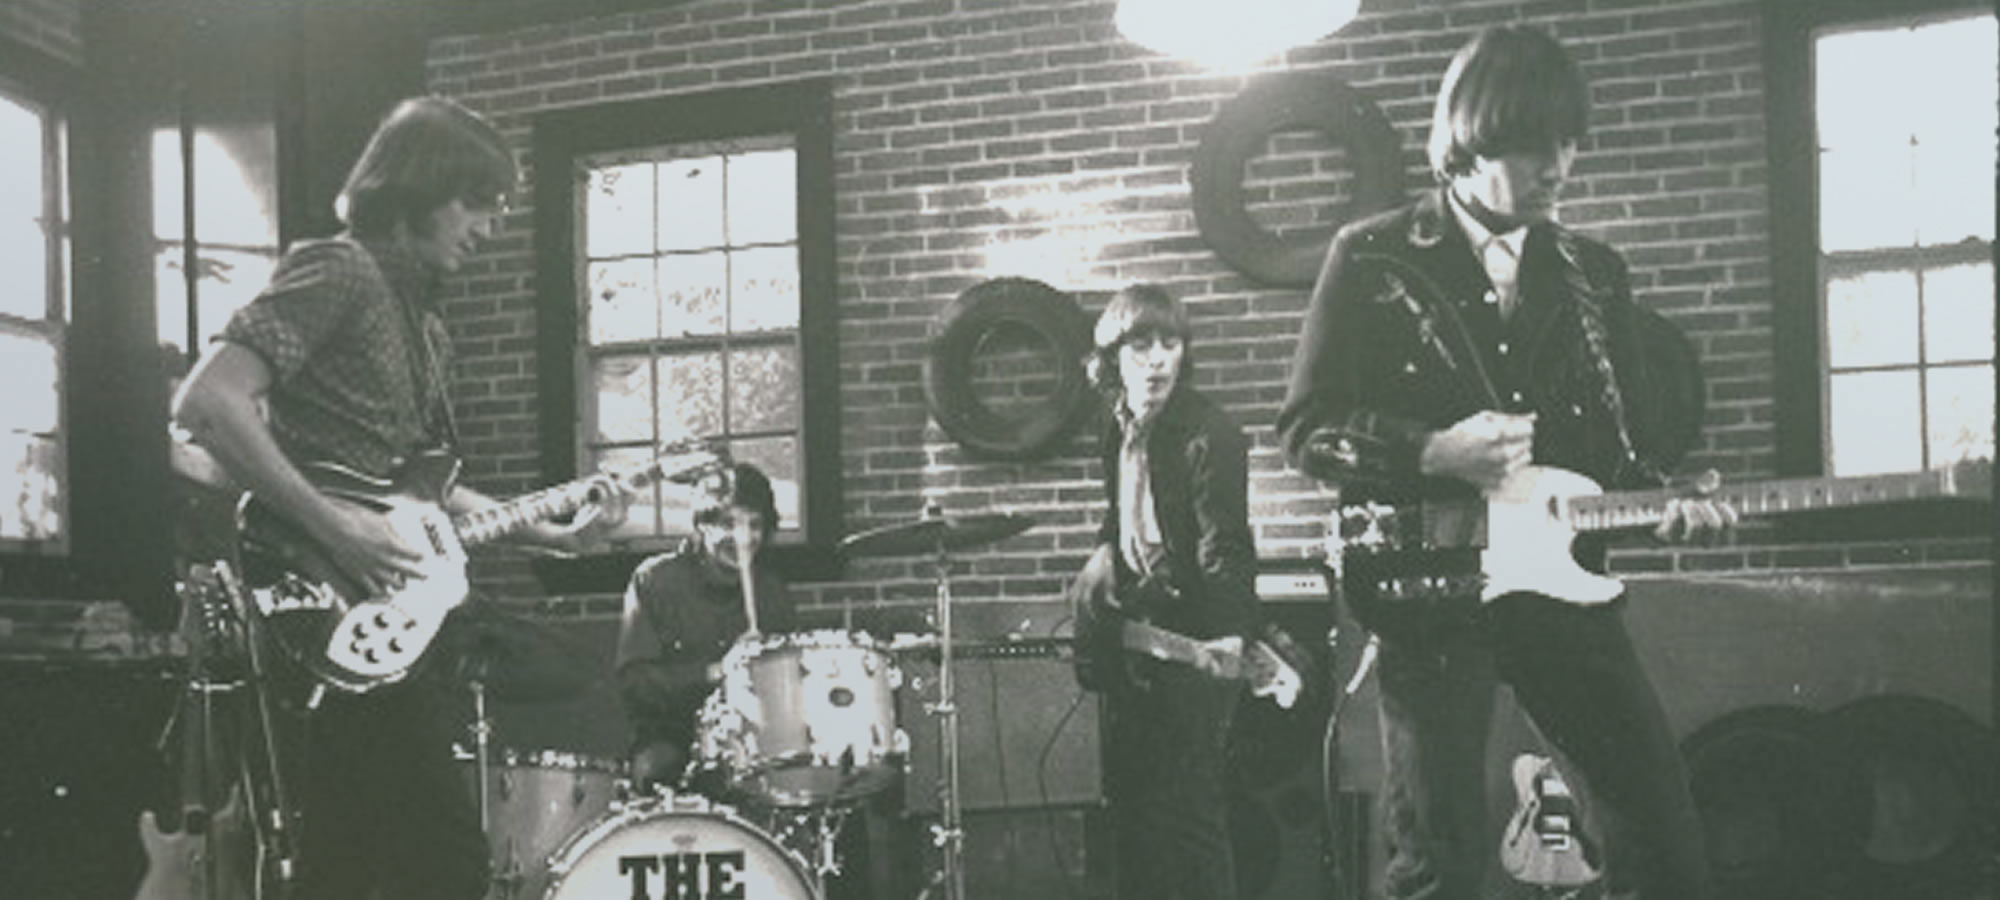 Few Bands have made more of an impact<br>on the current musical scene